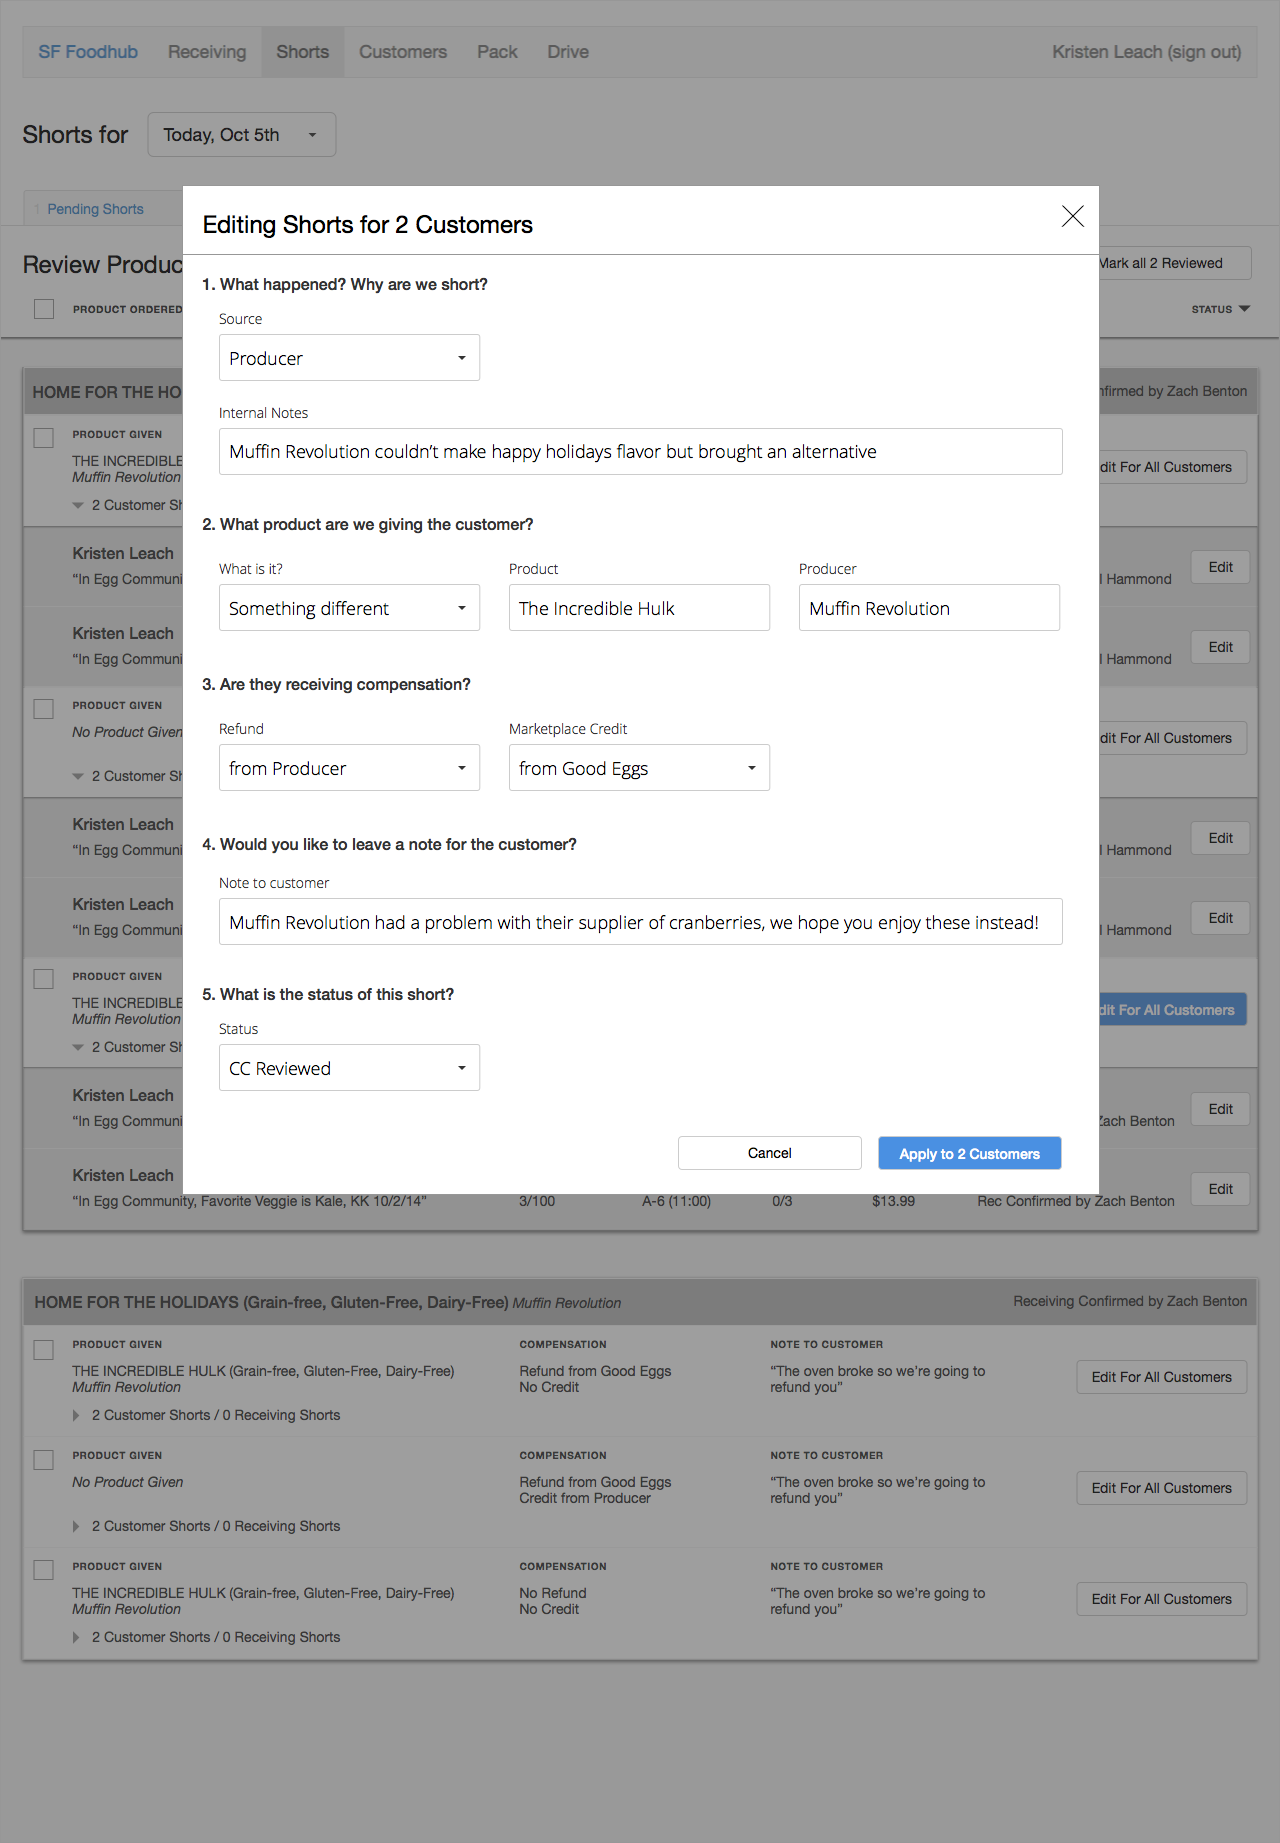 Form capturing information to appear in customer email